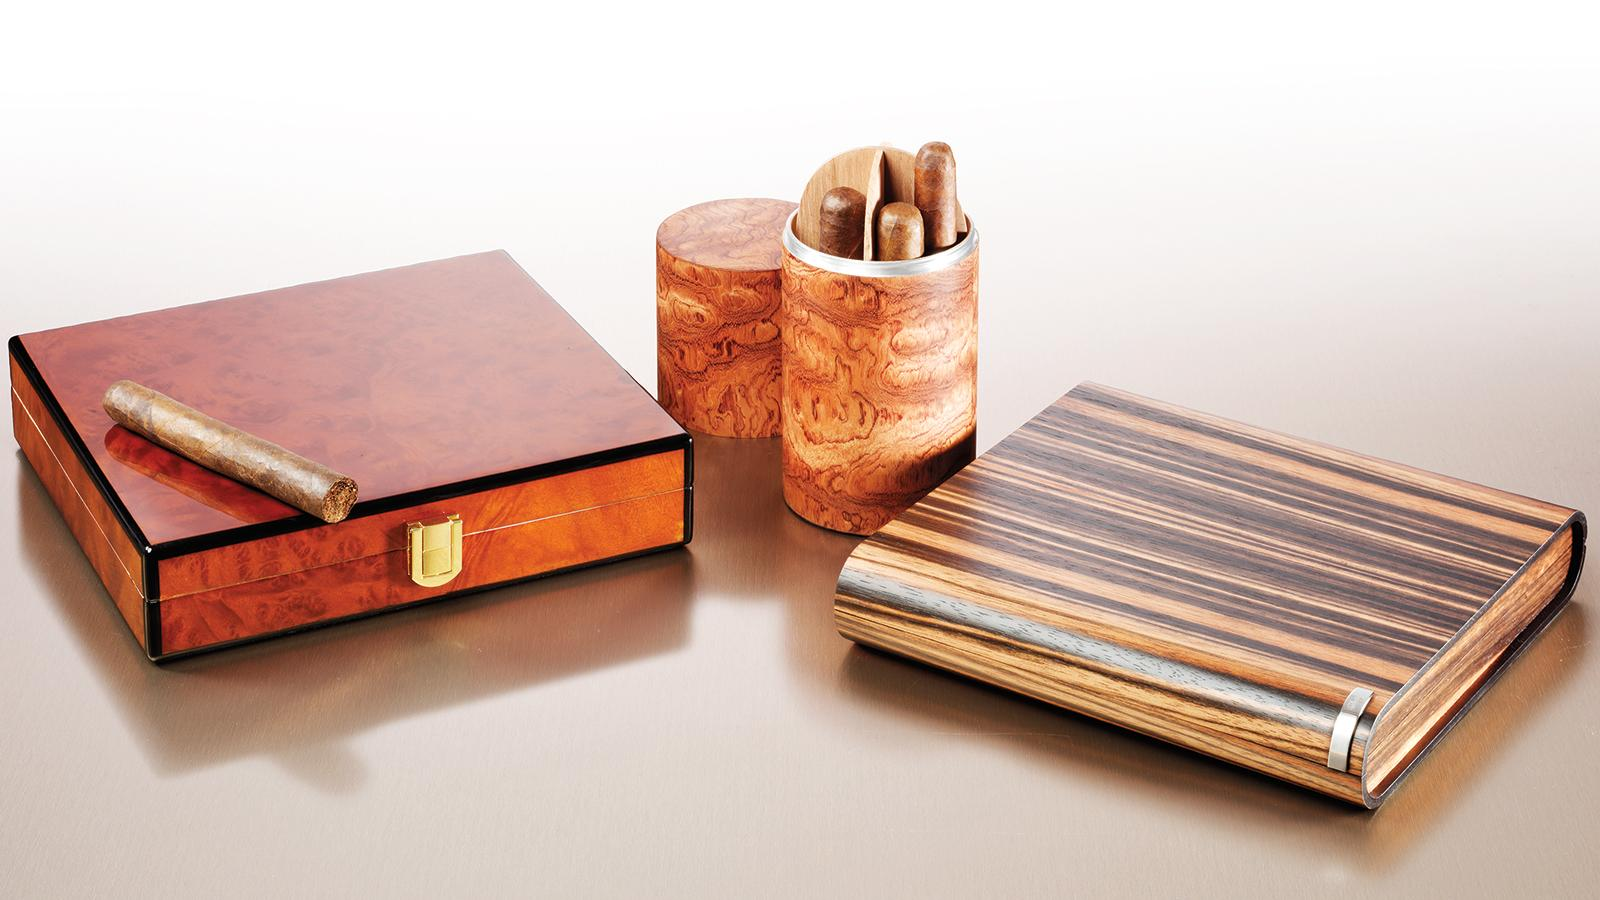 From left: Daniel Marshall Desktop/Travel Humidor ($250), Brizard & Co. Cylinder Desk Humidor ($199) and Davidoff of Geneva's Voyager humidor ($1,290).